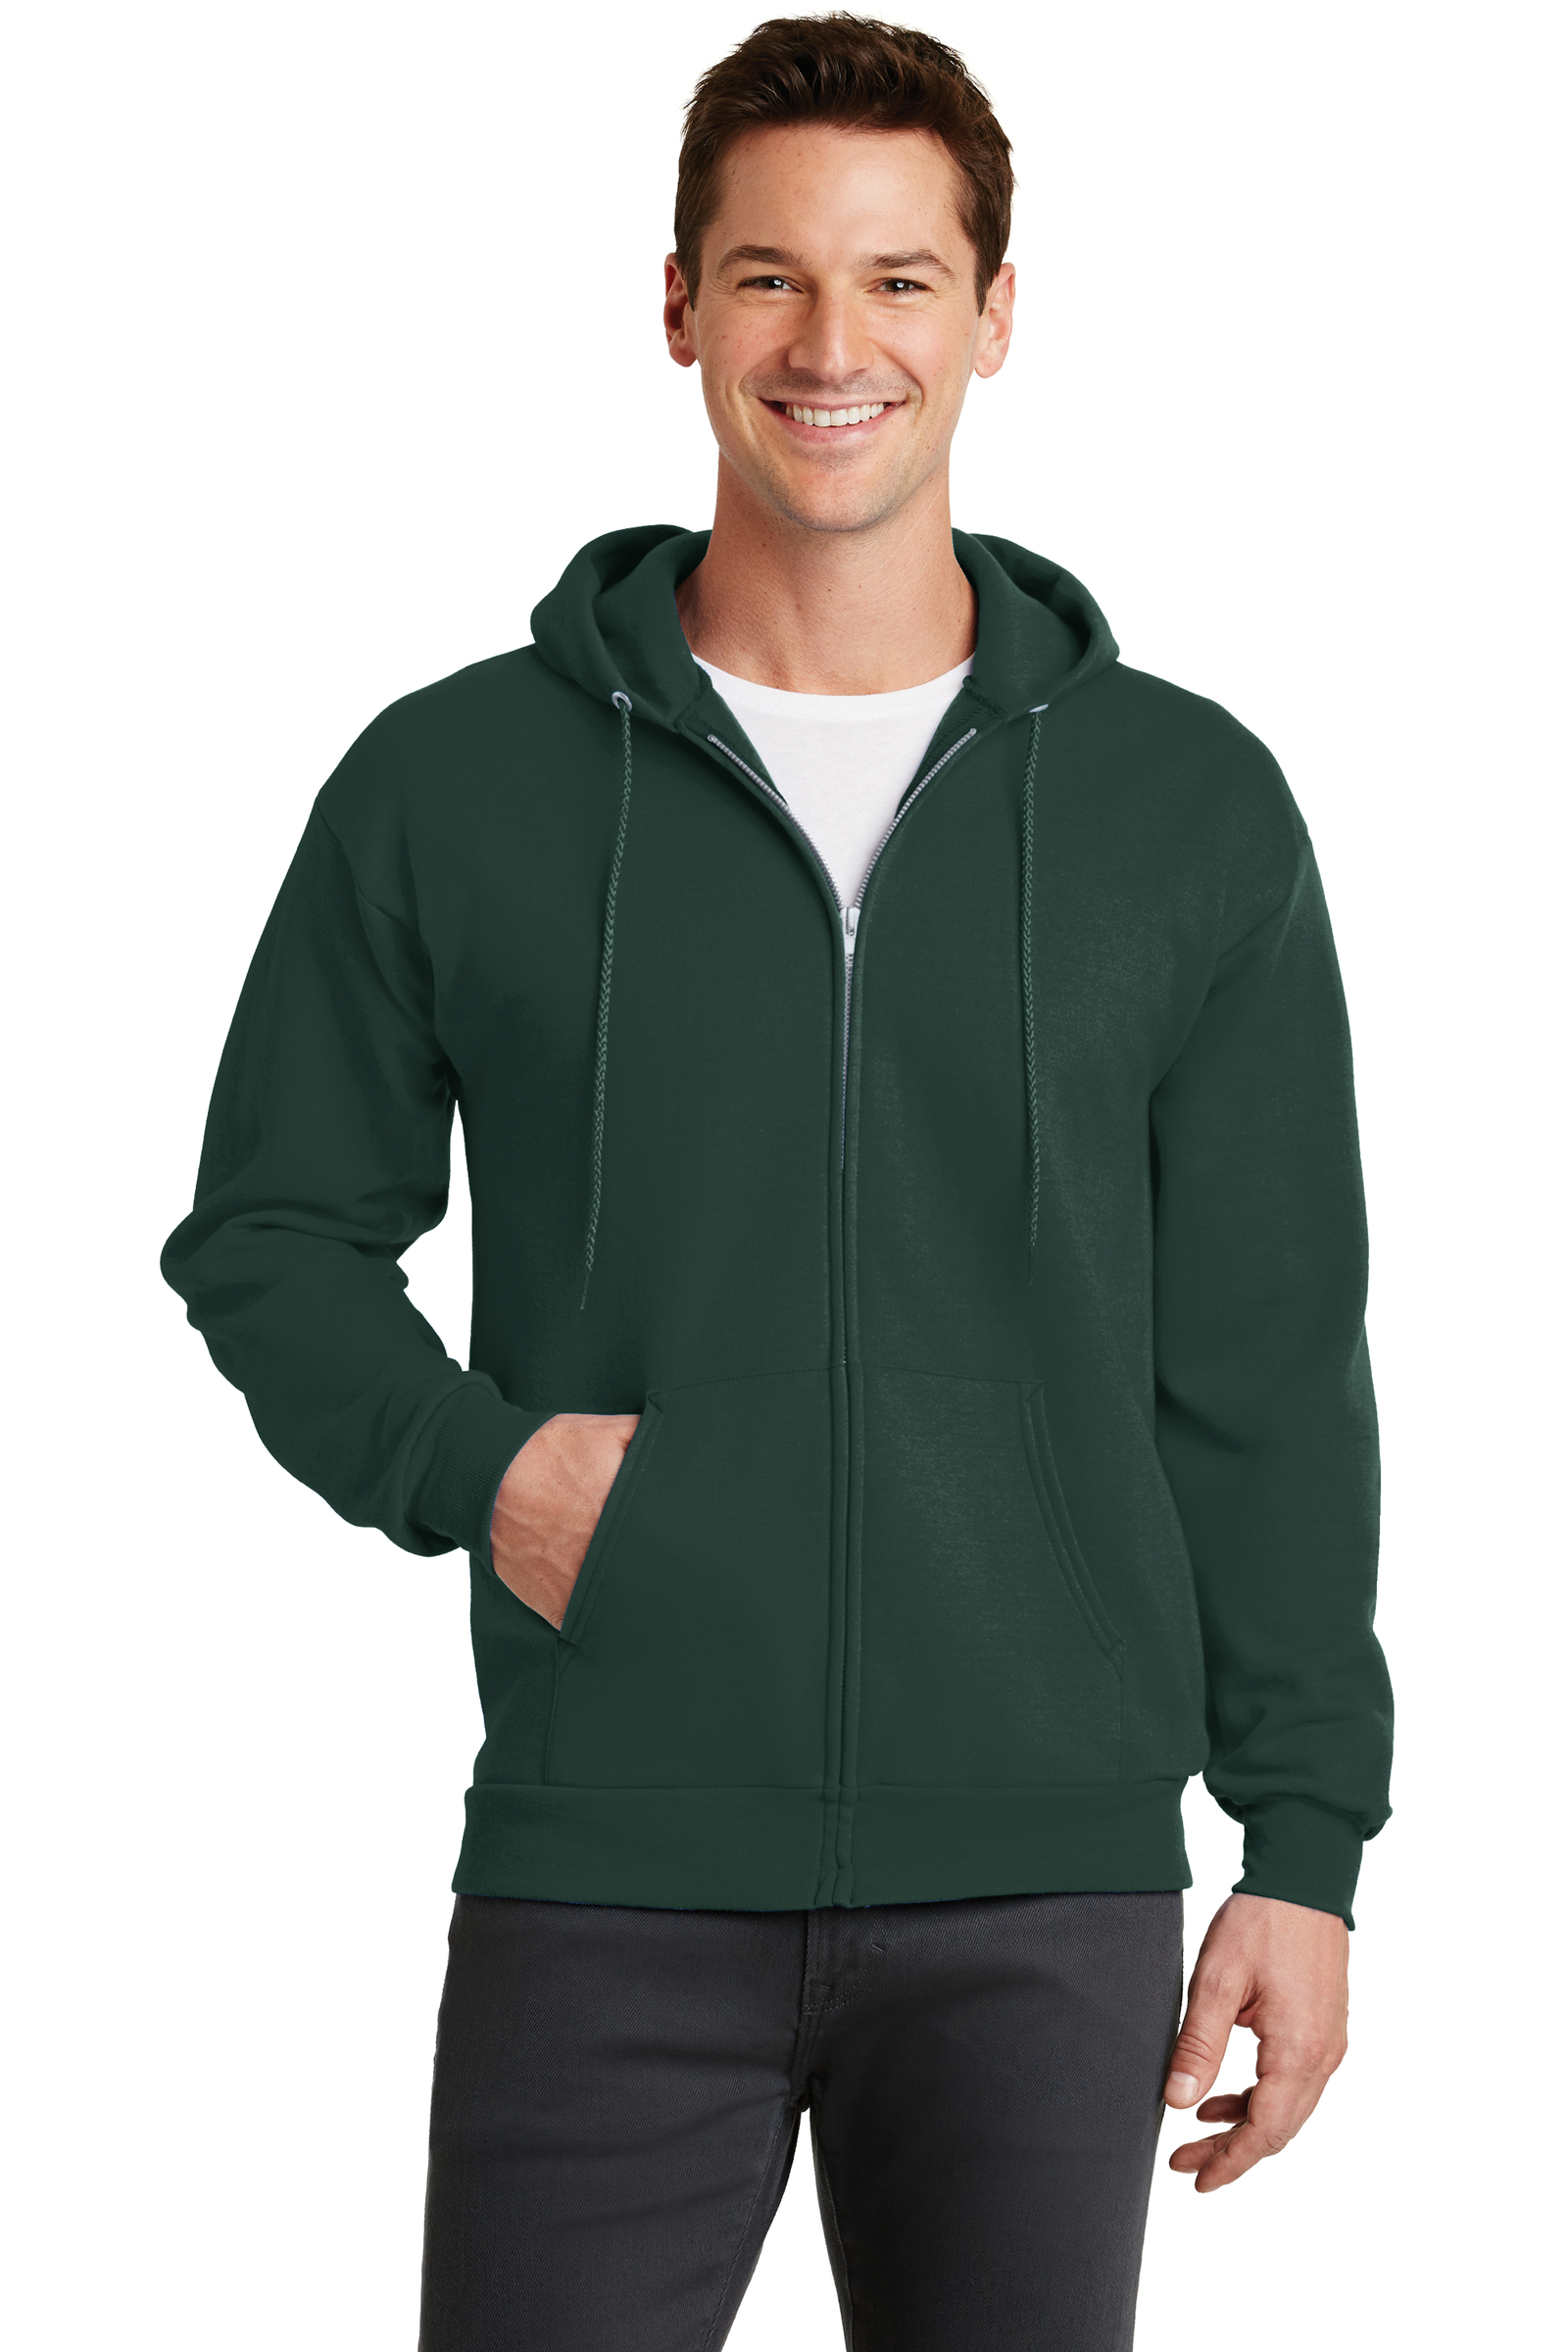 Port & Company Embroidered Men's Core Fleece Full-Zip Hooded Sweatshirt